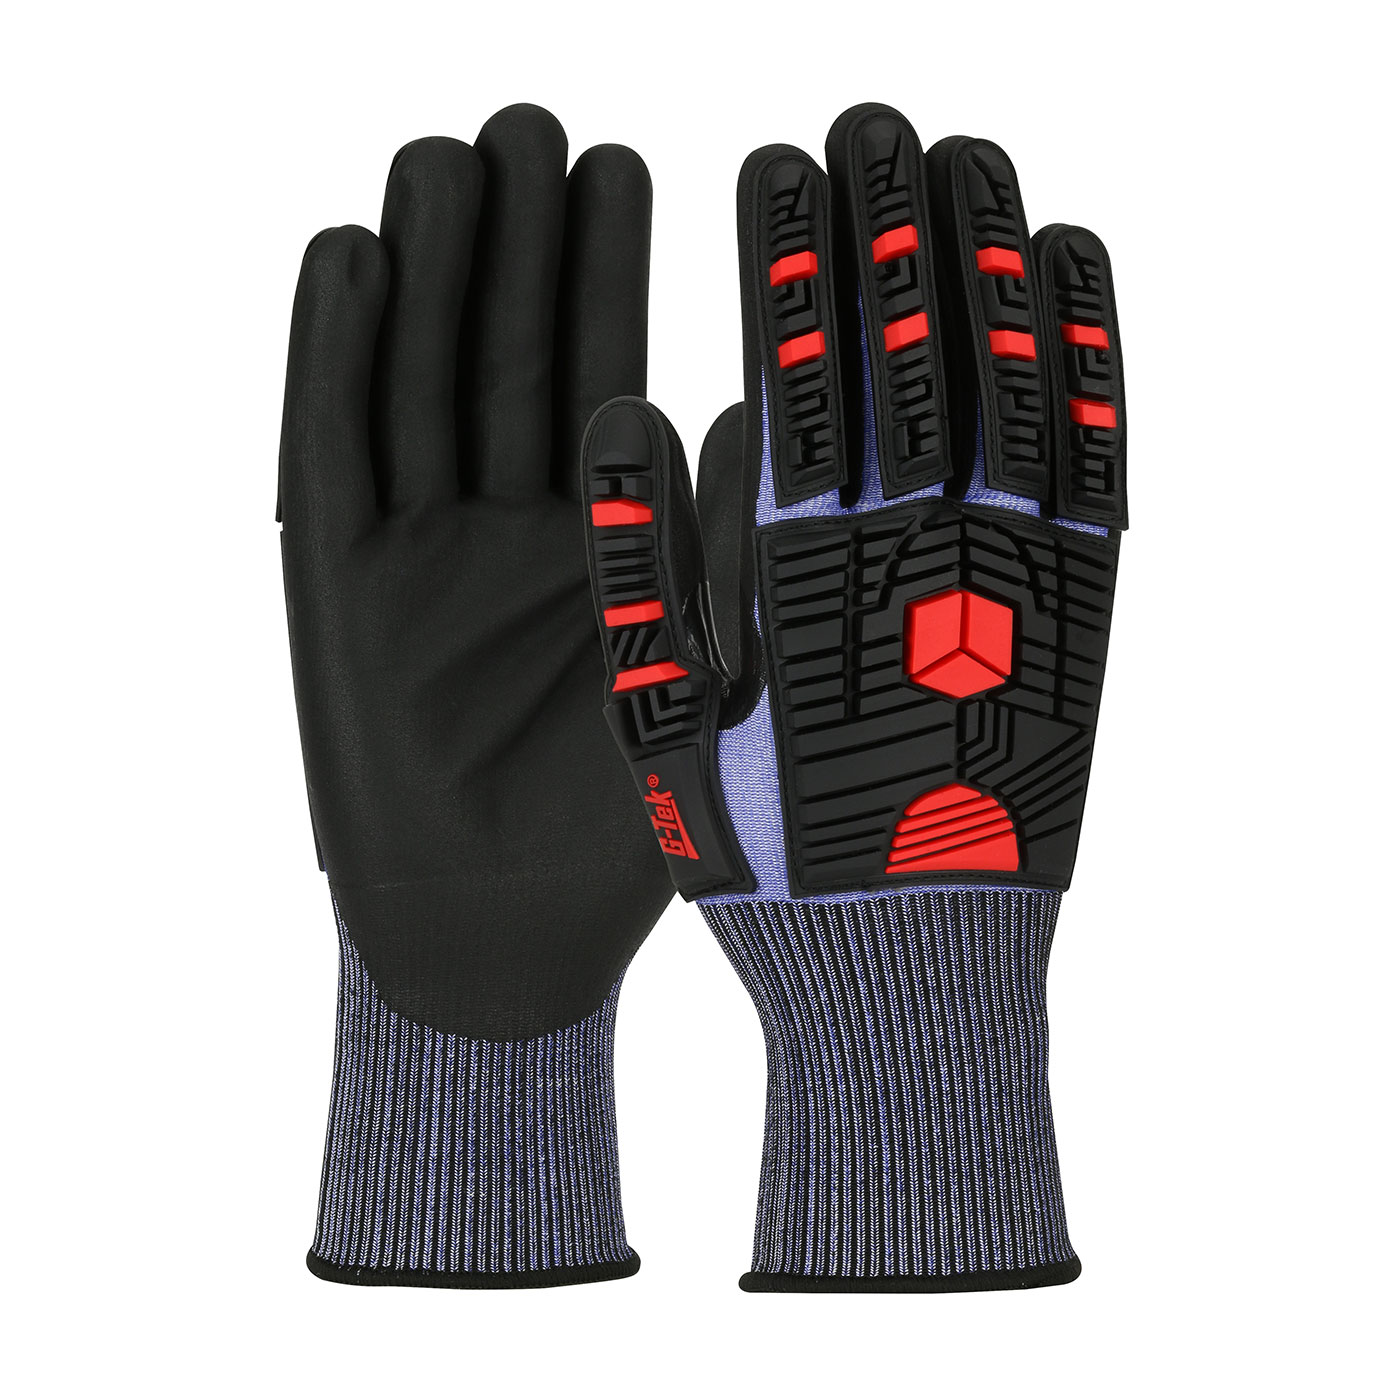 16-MP585 PIP® Seamless Knit G-Tek®  PolyKor® X7™ Blended Glove with Impact Protection and NeoFoam® Coated Palm & Fingers